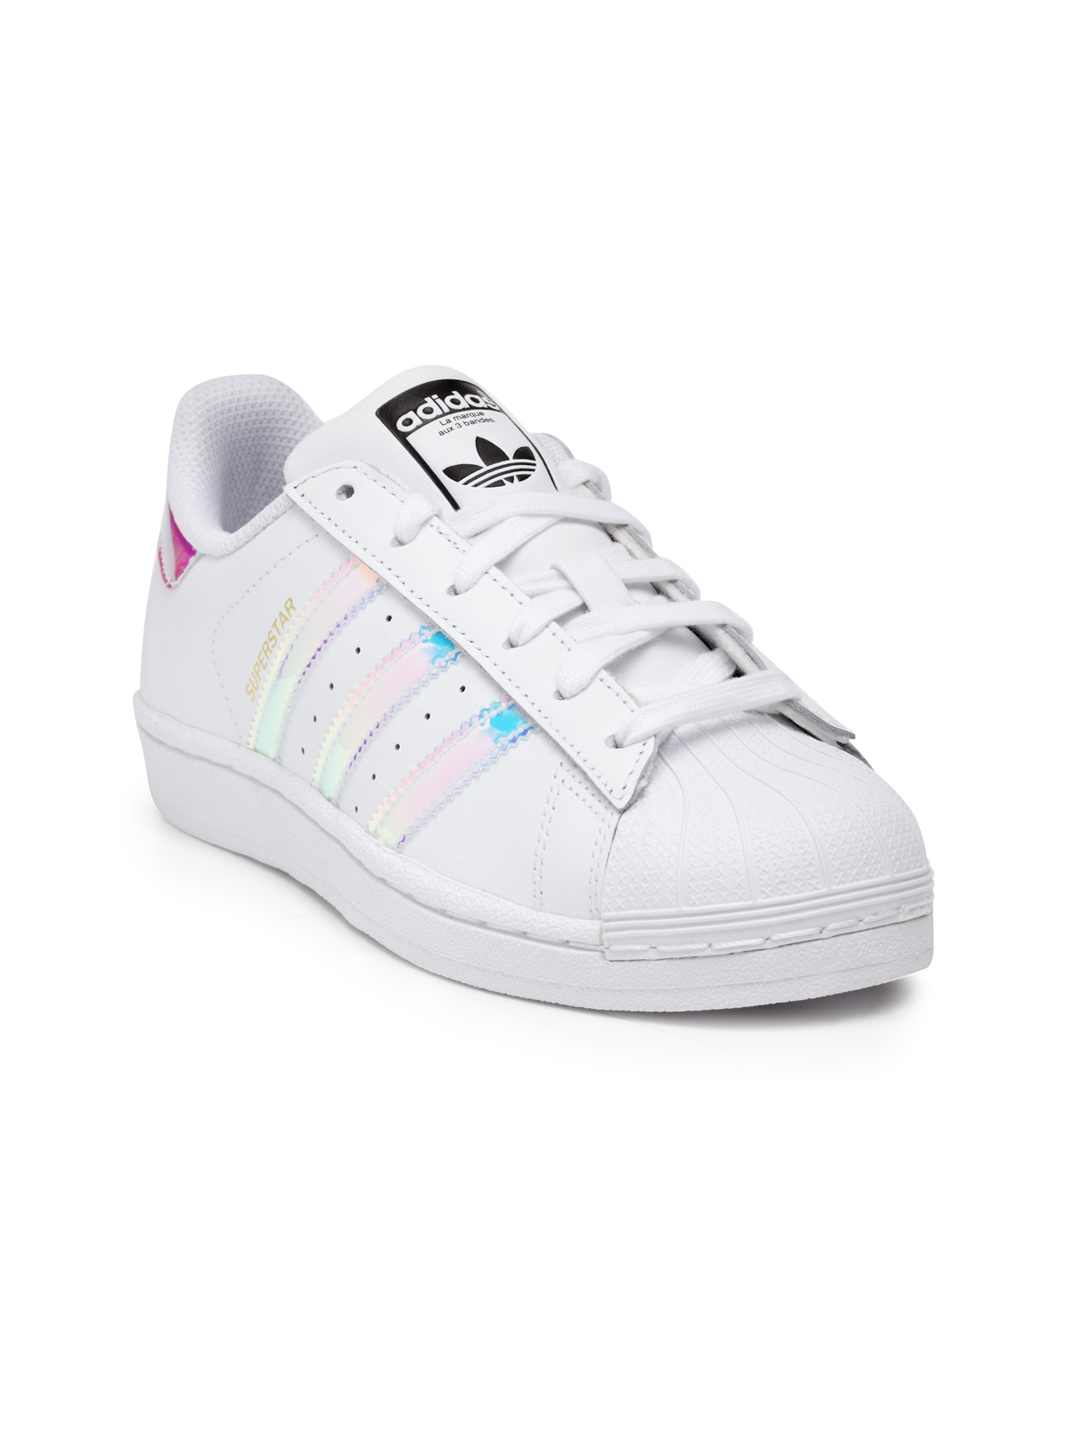 newest b475e cee8b Casual Shoes Sneakers Superstar Kids Buy Adidas White Originals CwqW7Yg